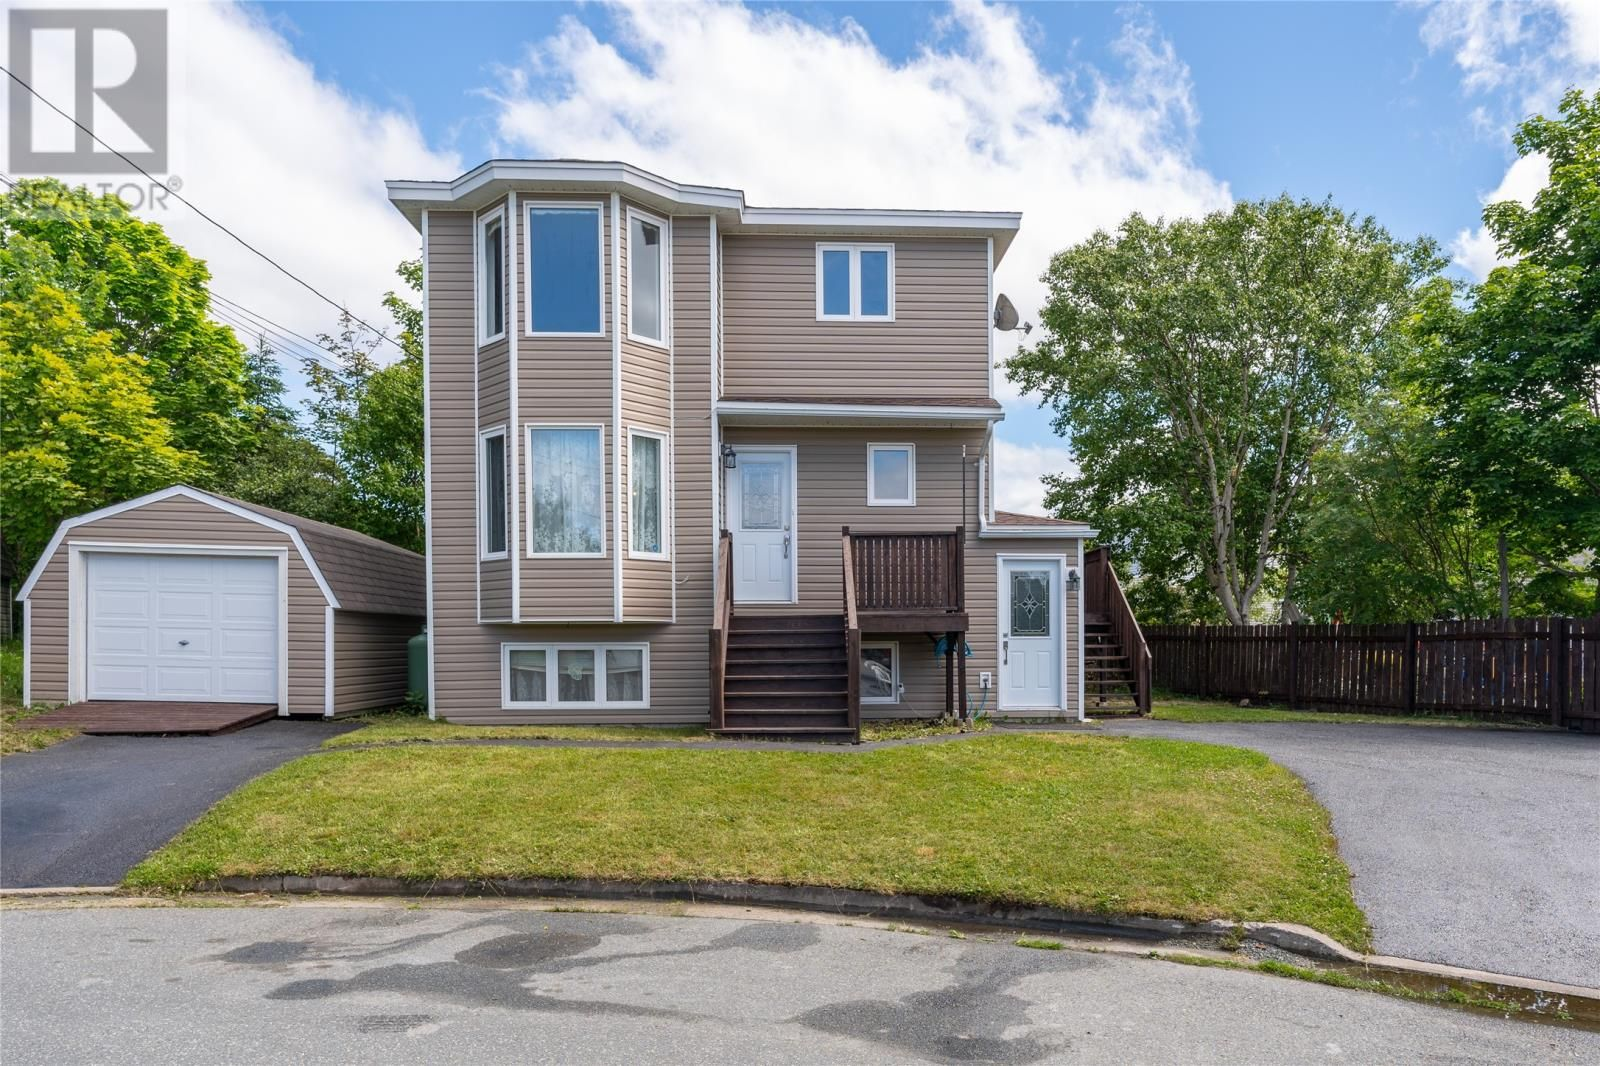 Main Photo: 6 ANNIE'S Place in Conception Bay South: House for sale : MLS®# 1233143